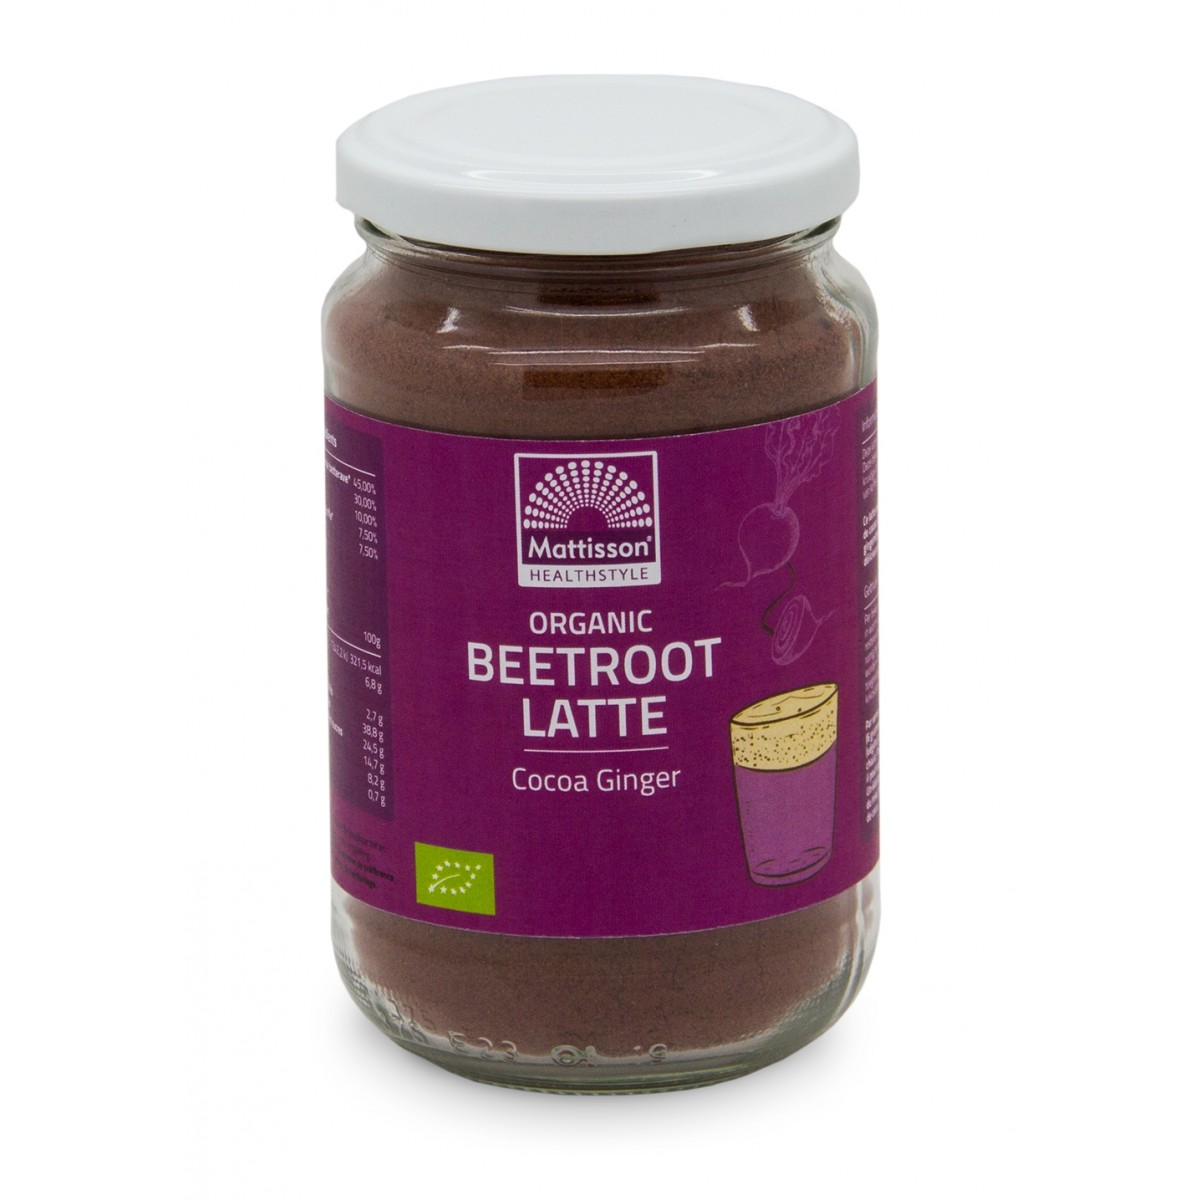 Beetroot Latte Gember - Cacao